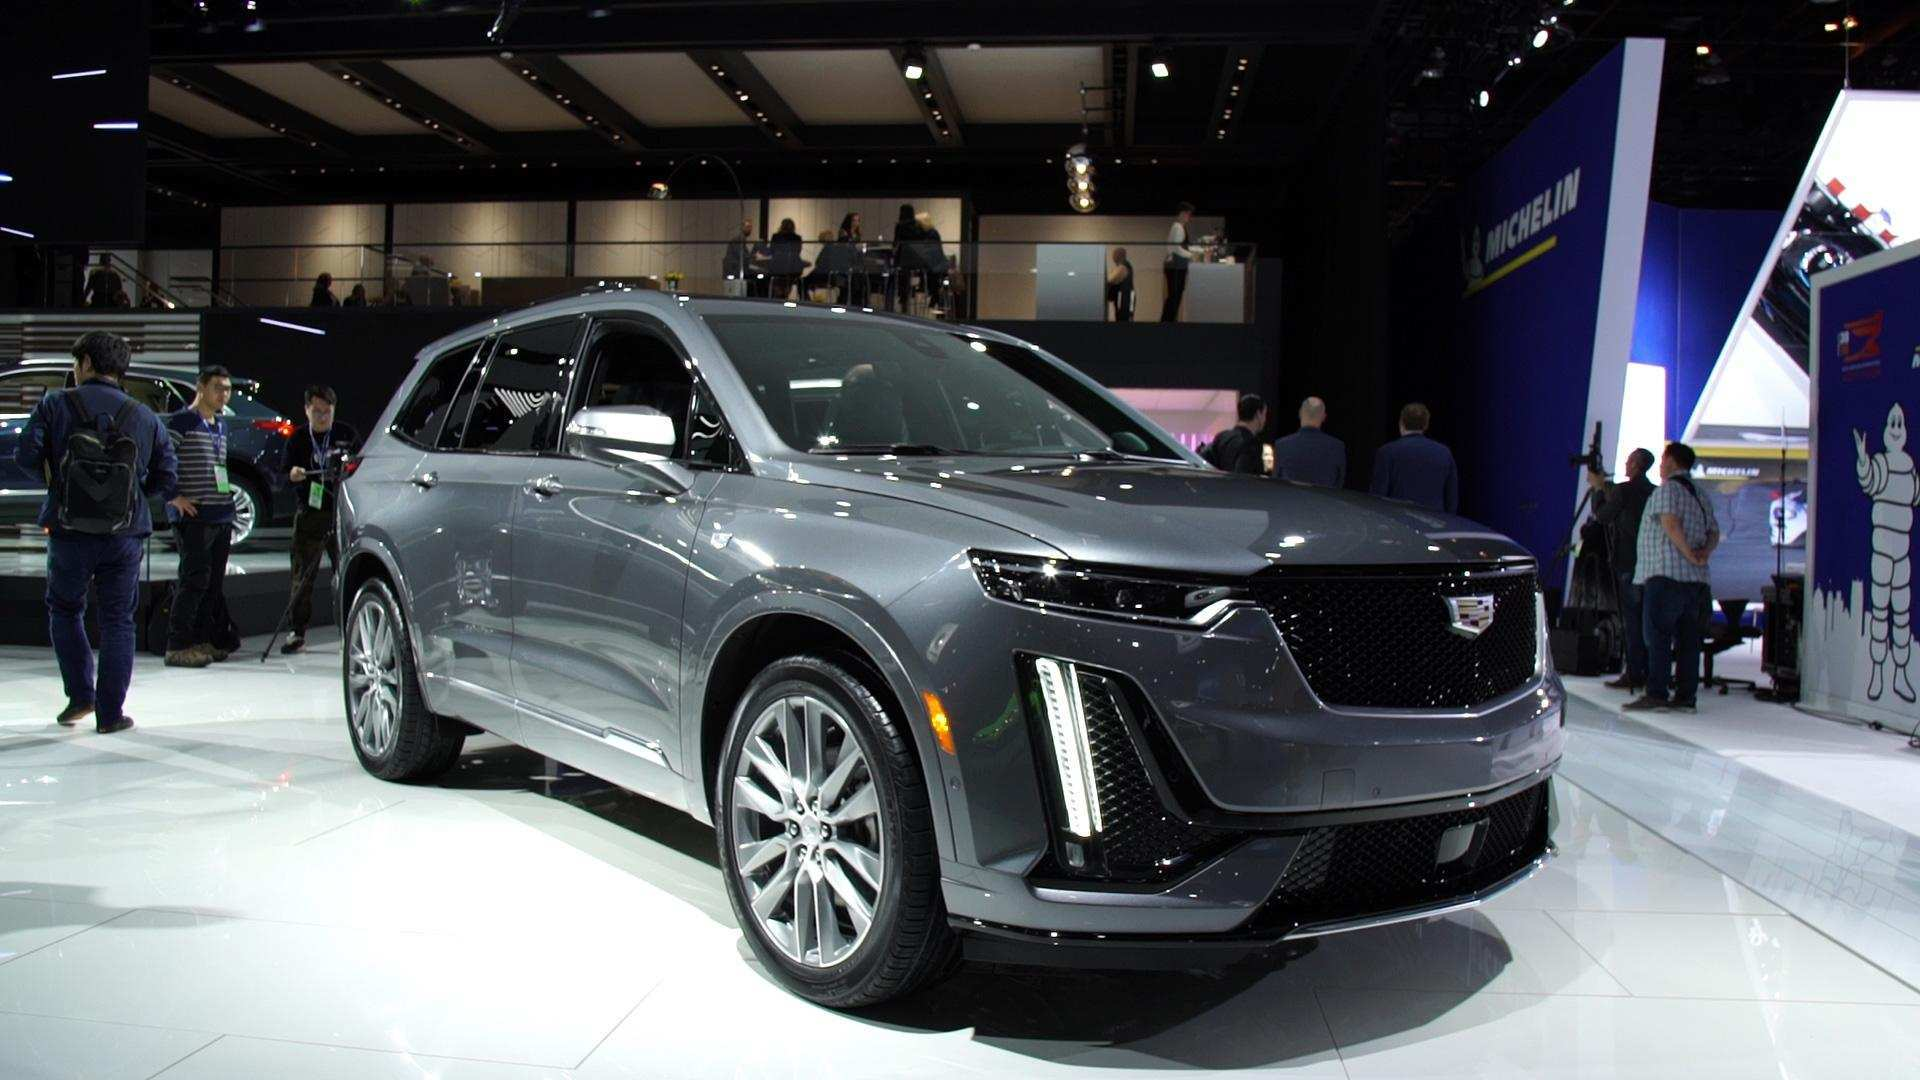 67 Best Cadillac Xt6 2020 Review Rumors